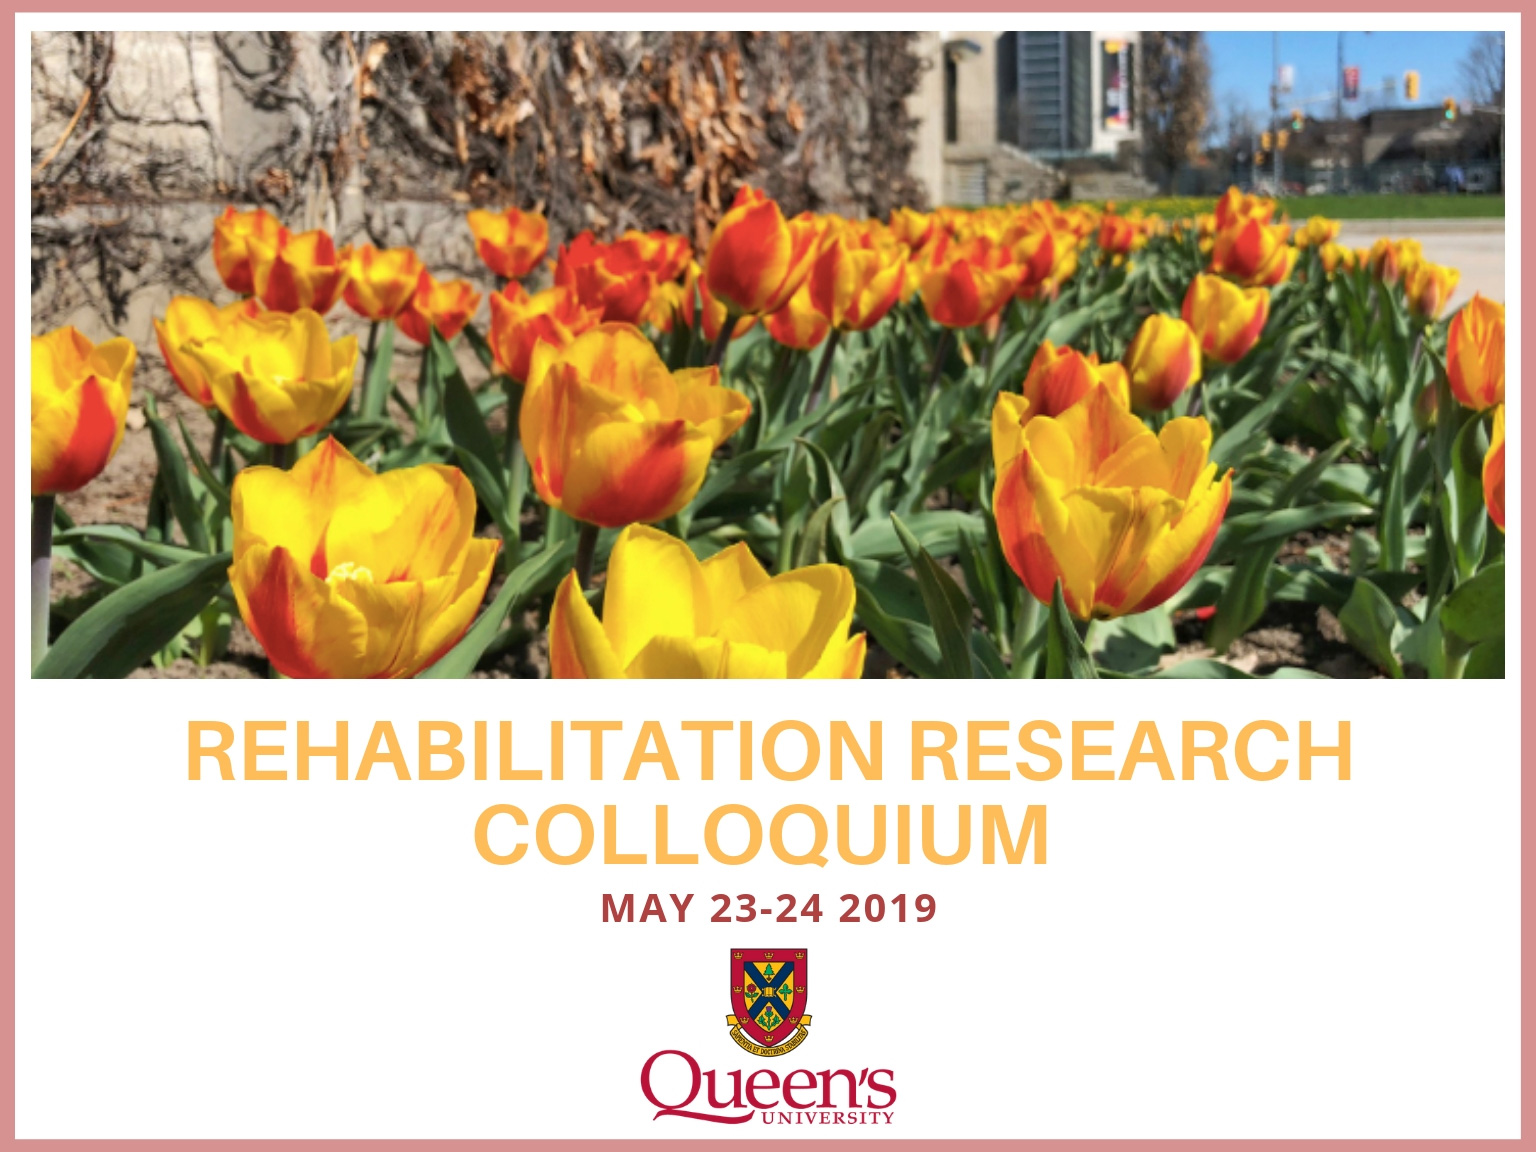 Rehabilitation Research Colloquium